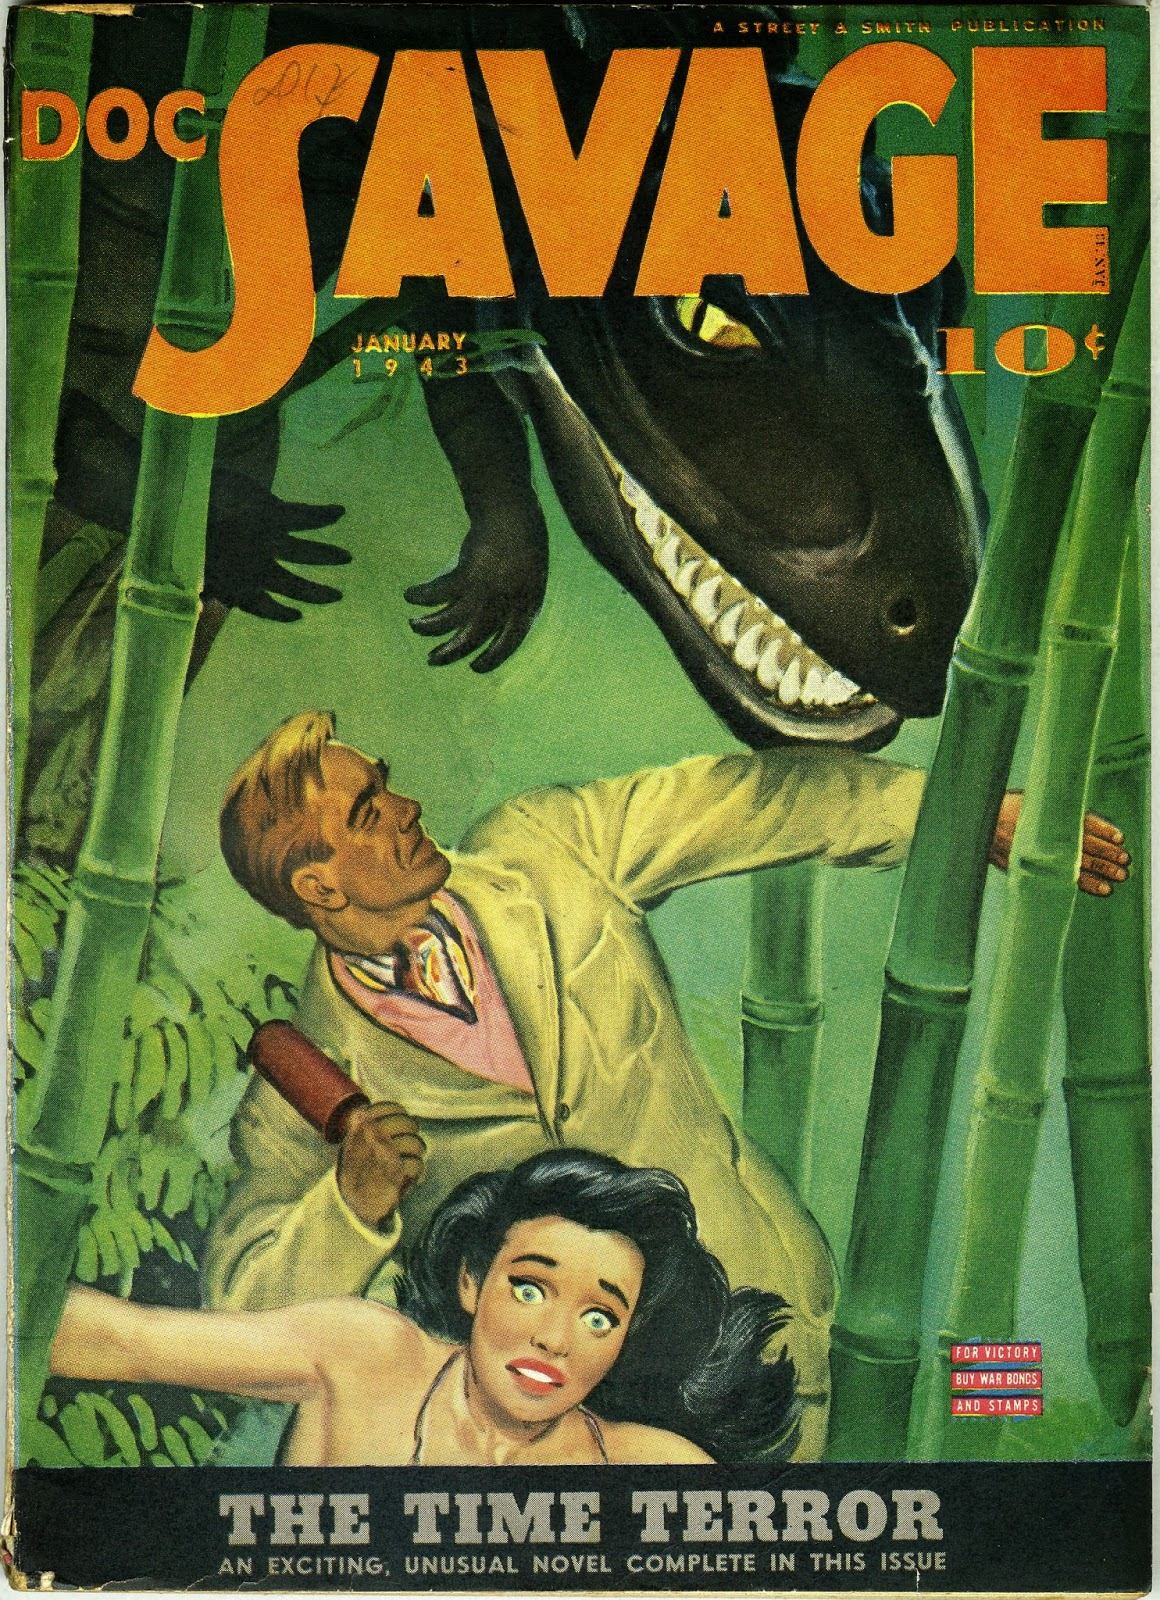 http://pulpcovers.com/the-time-terror/